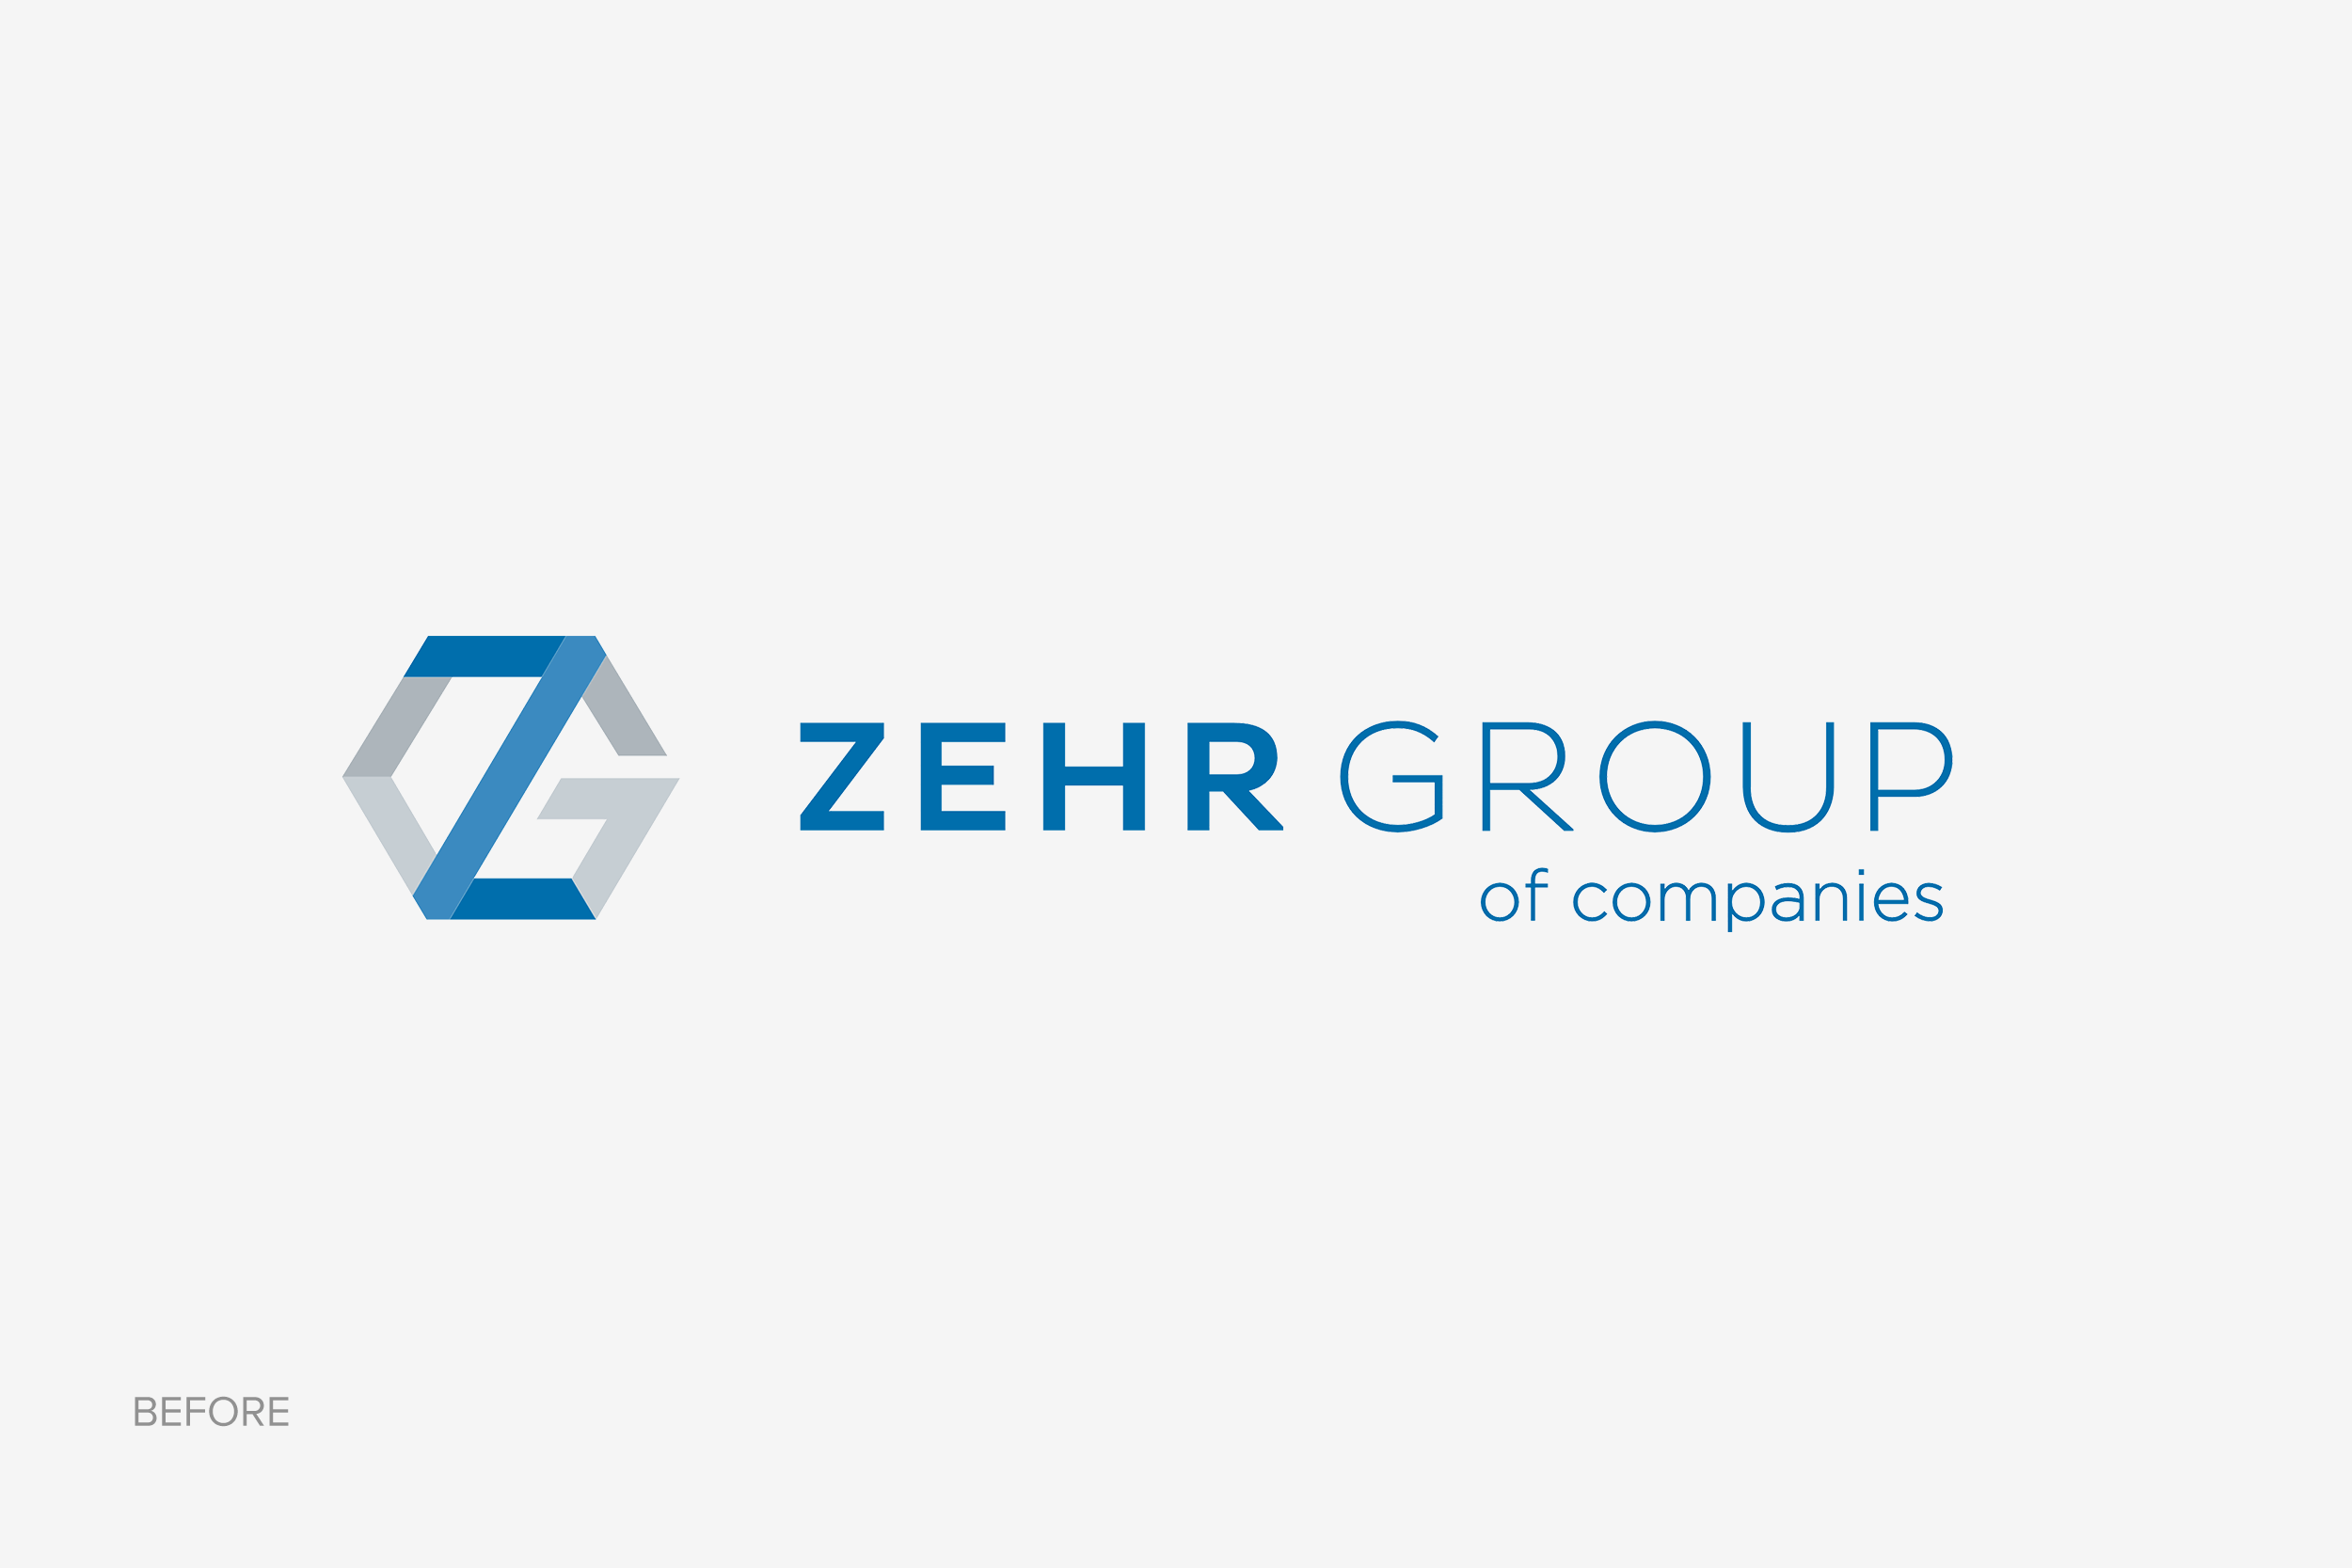 Zehr logo before